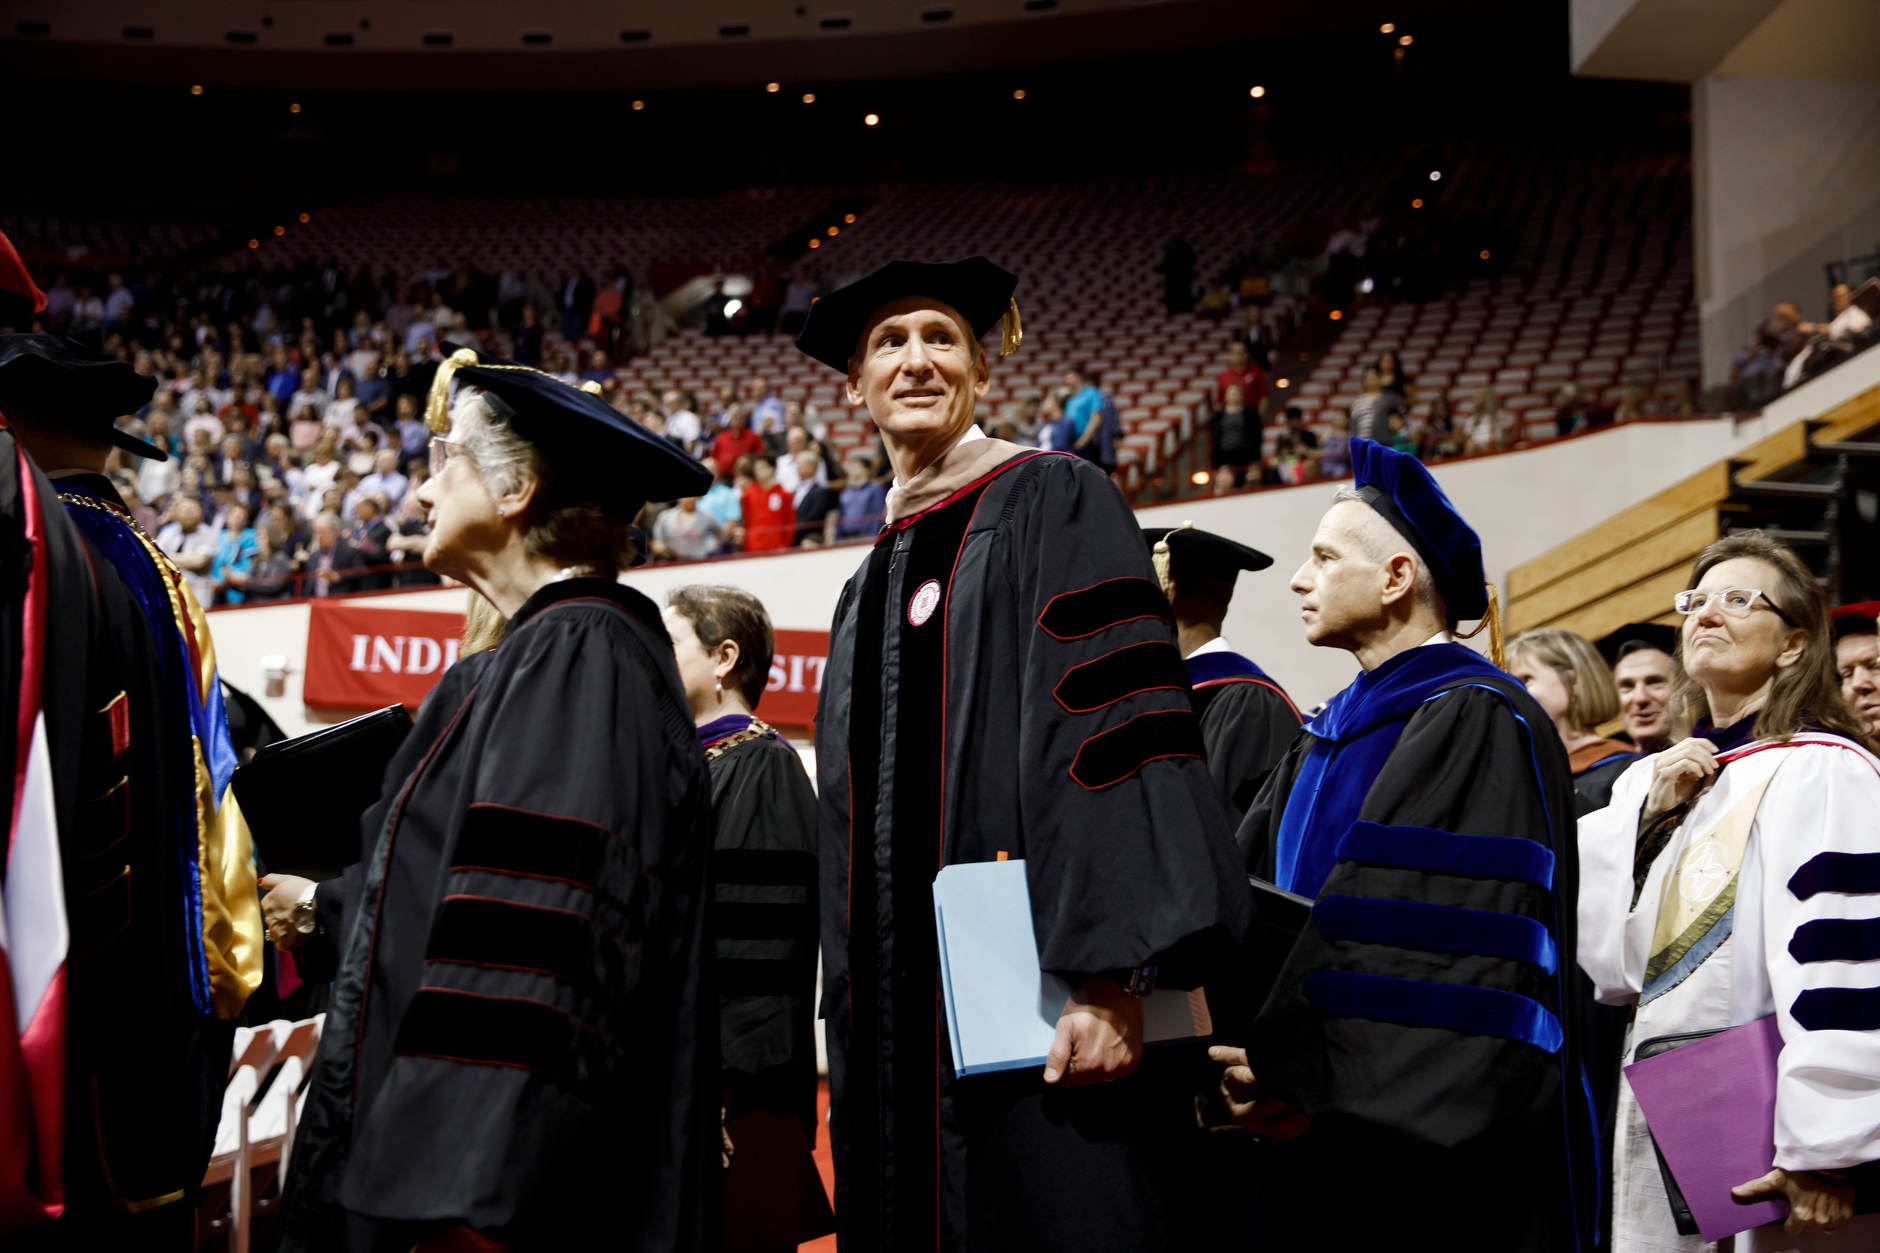 Cummins Chairman and CEO Tom Linebarger walks in the processional during the IU Bloomington Graduate Commencement at Assembly Hall on Friday, May 3, 2019. (James Brosher/Indiana University)